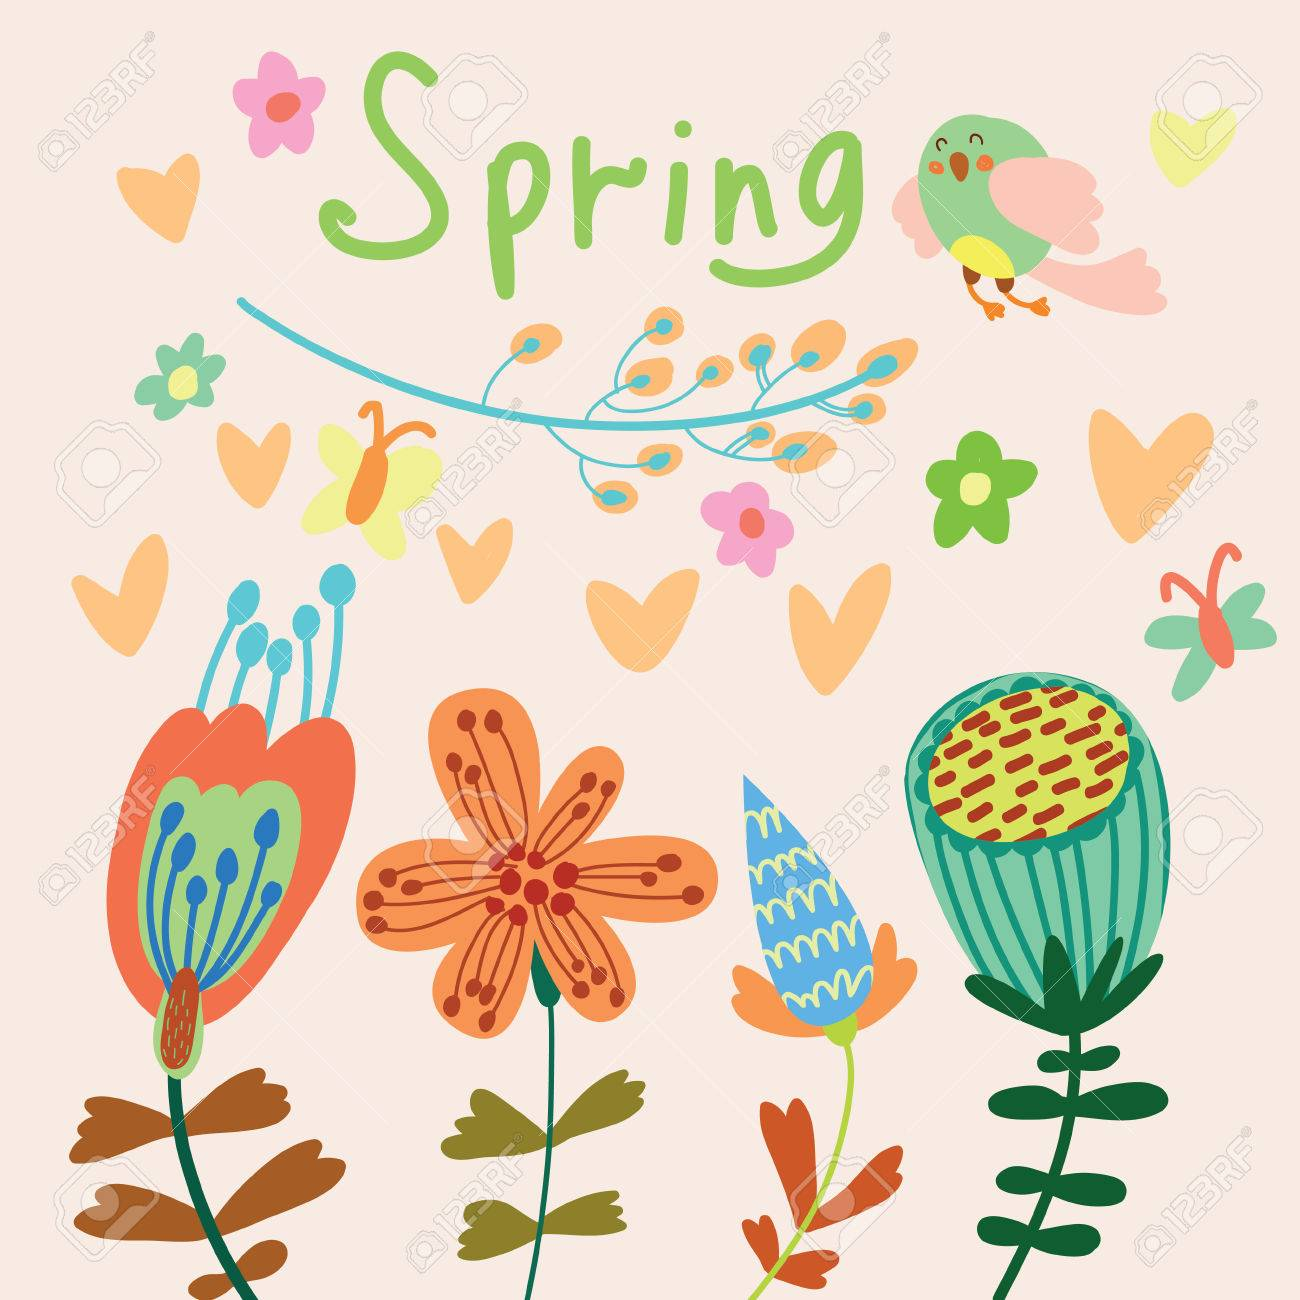 Spring Flowers Cartoon Spring Flowers Cartoon Floral Background In